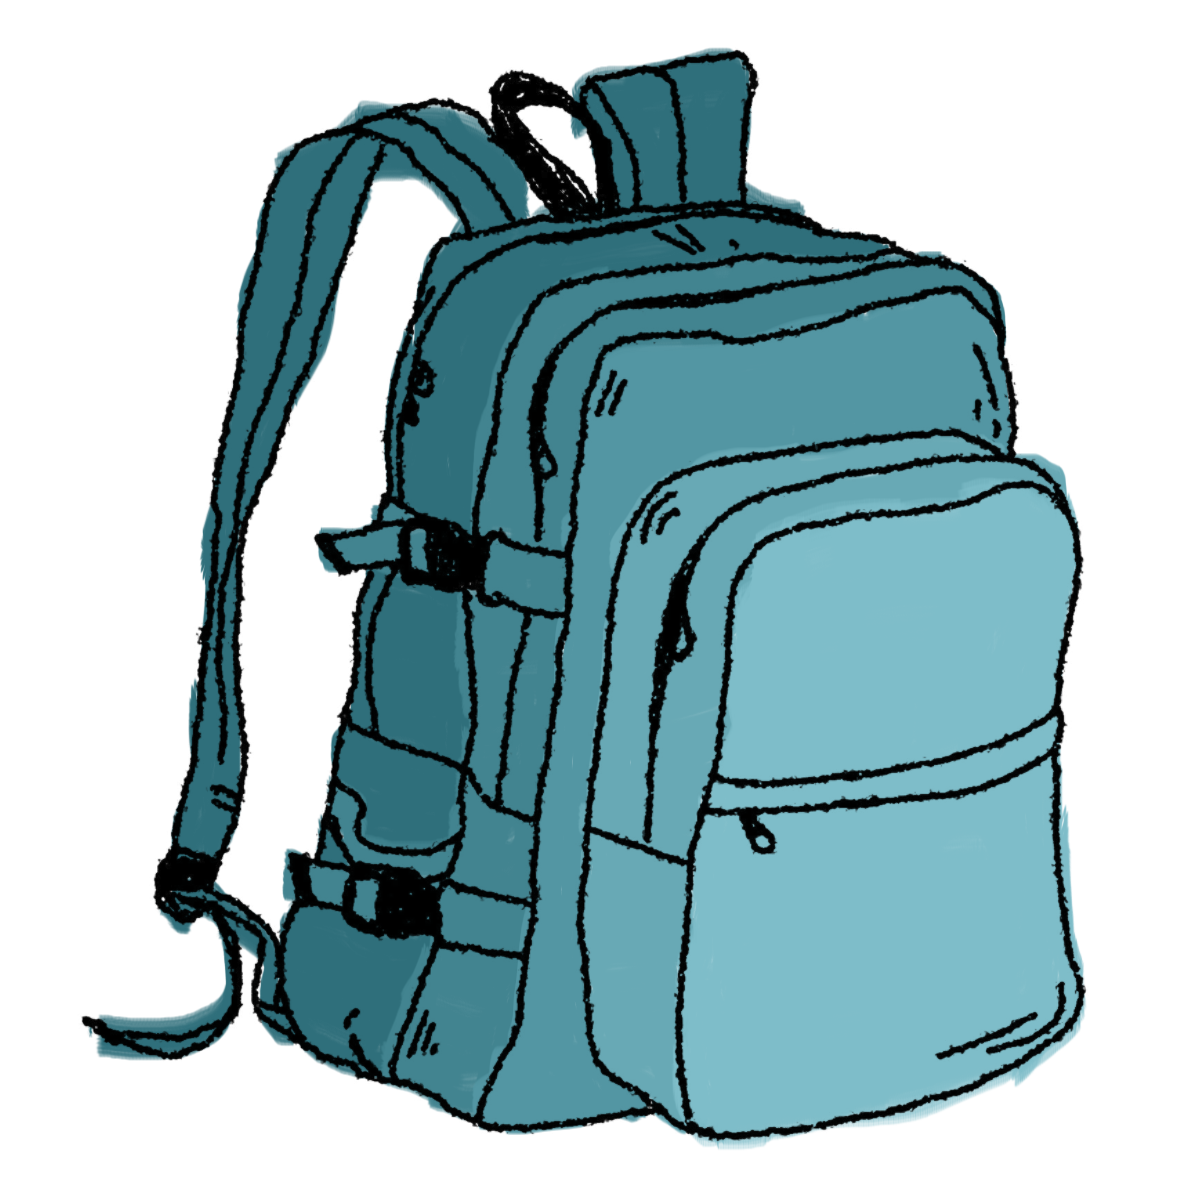 png library download Transparent background free on. Bookbag clipart empty backpack